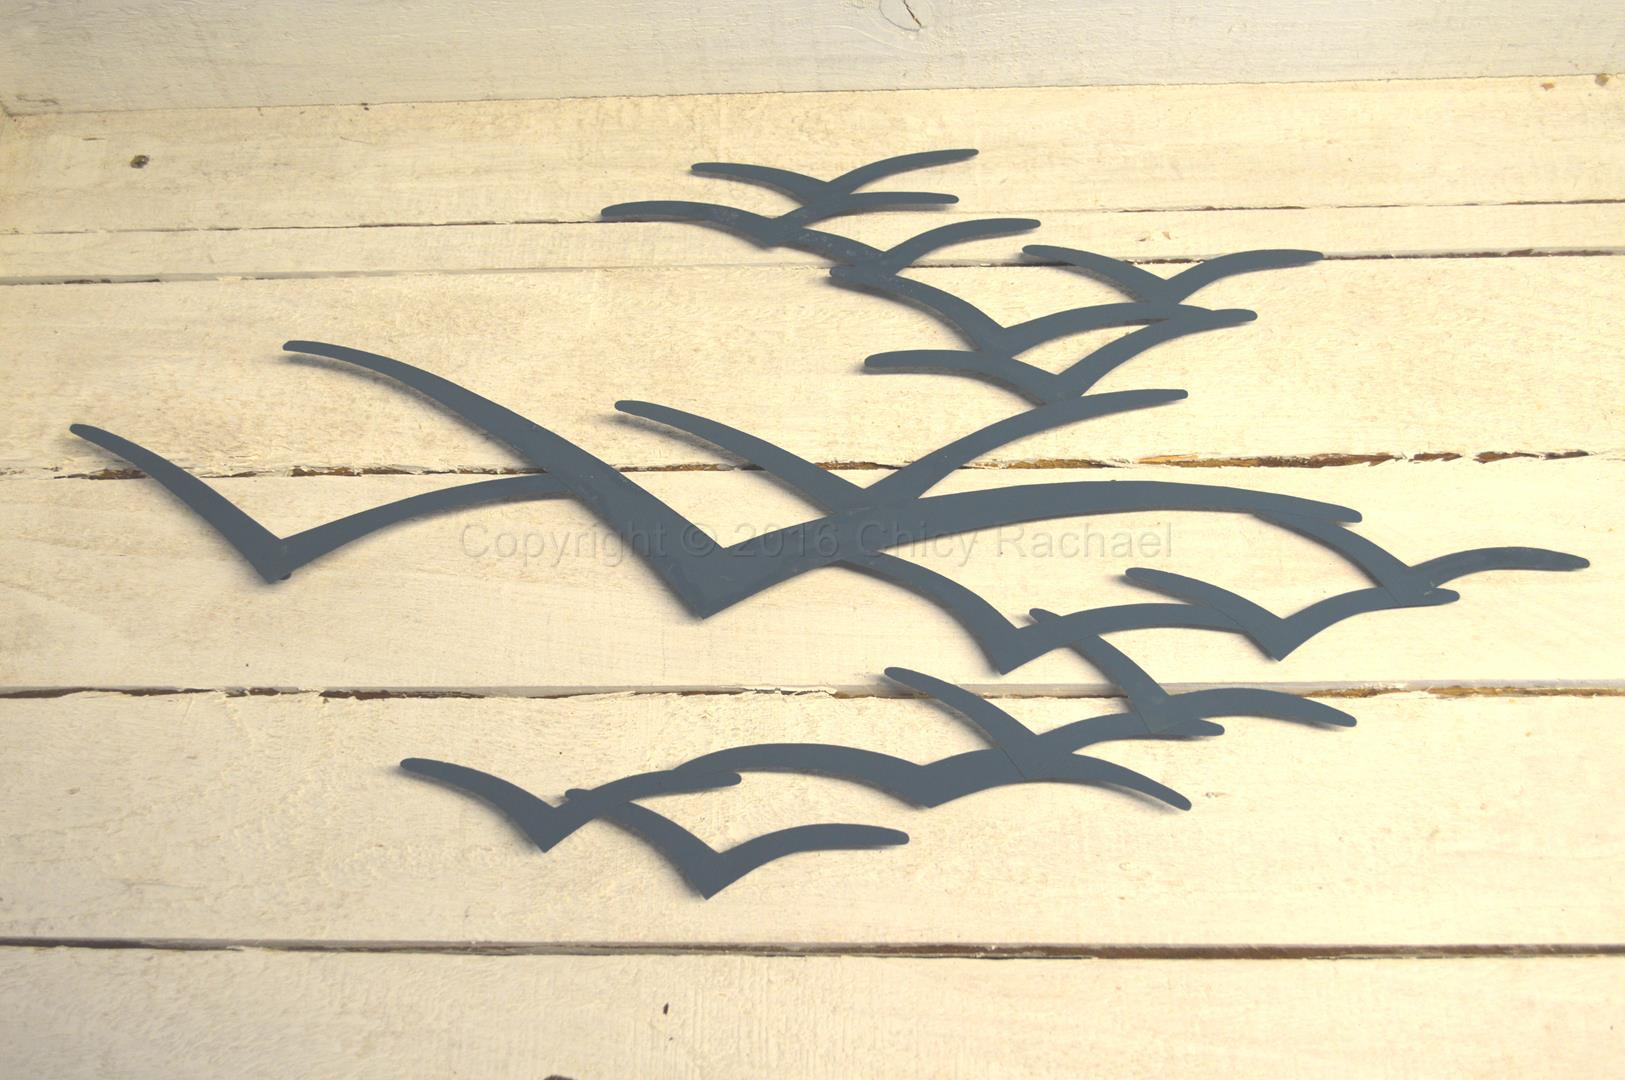 Blue Metal Seagulls in Flight Wall Art